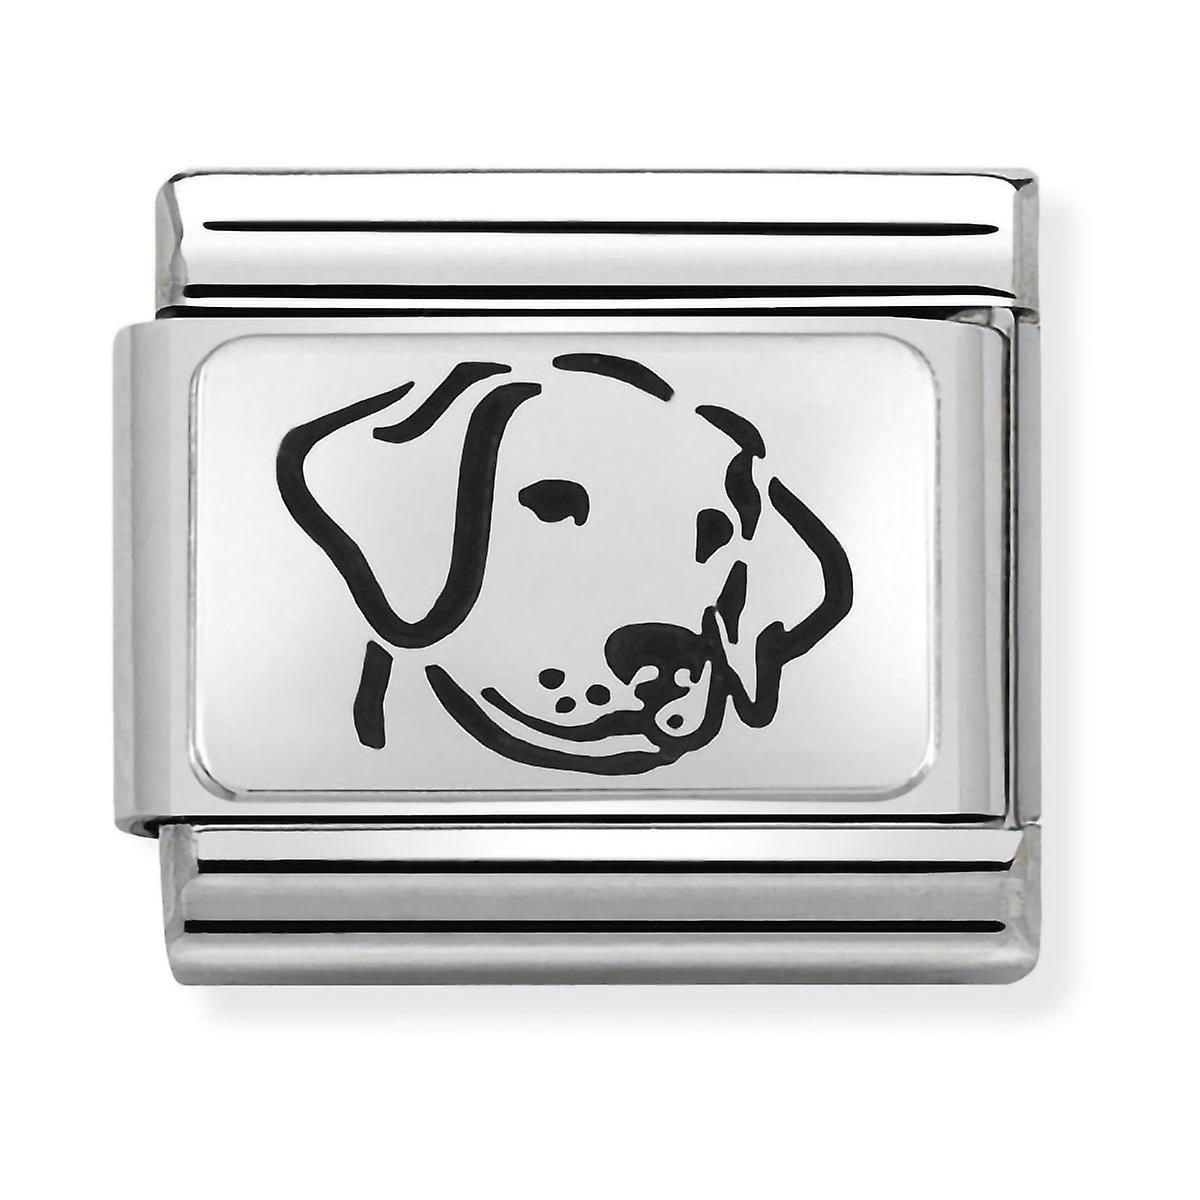 Nomination Classic Dog Steel, Enamel and 925 Silver Link Charm 330109/06